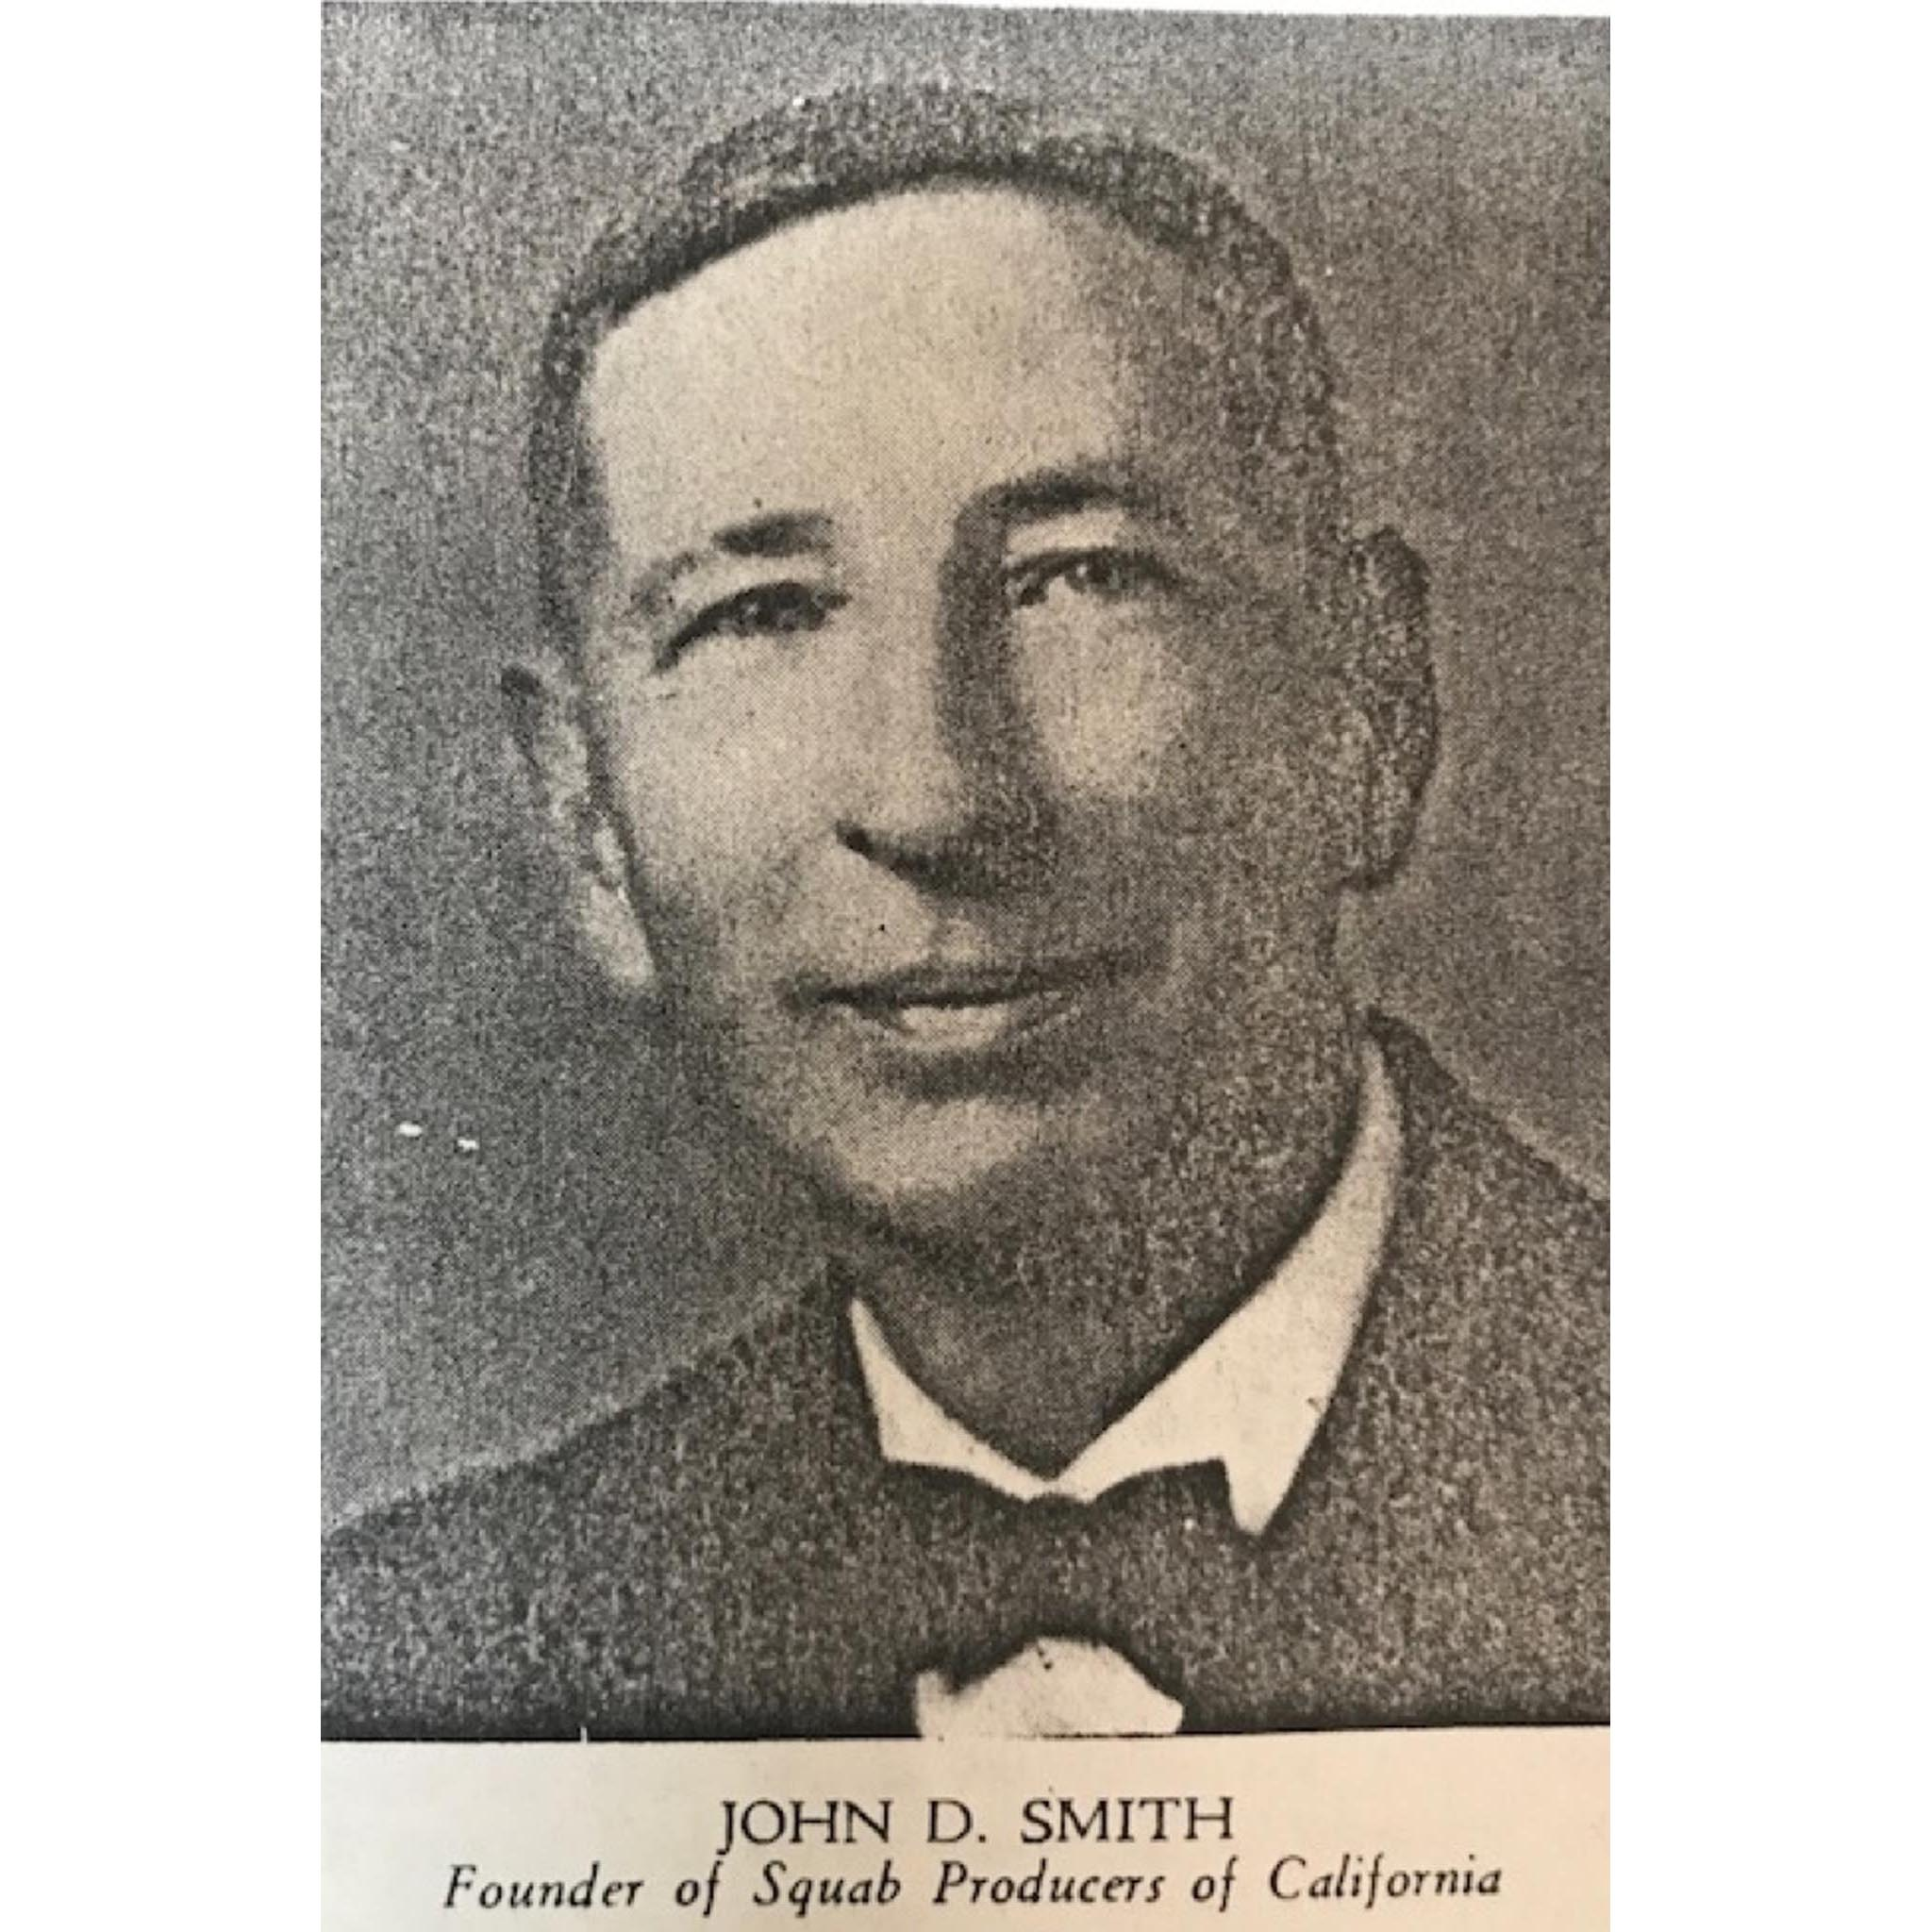 May 5th, 1943. John D. Smith organized members and formed the Squab Producers of California Cooperative.